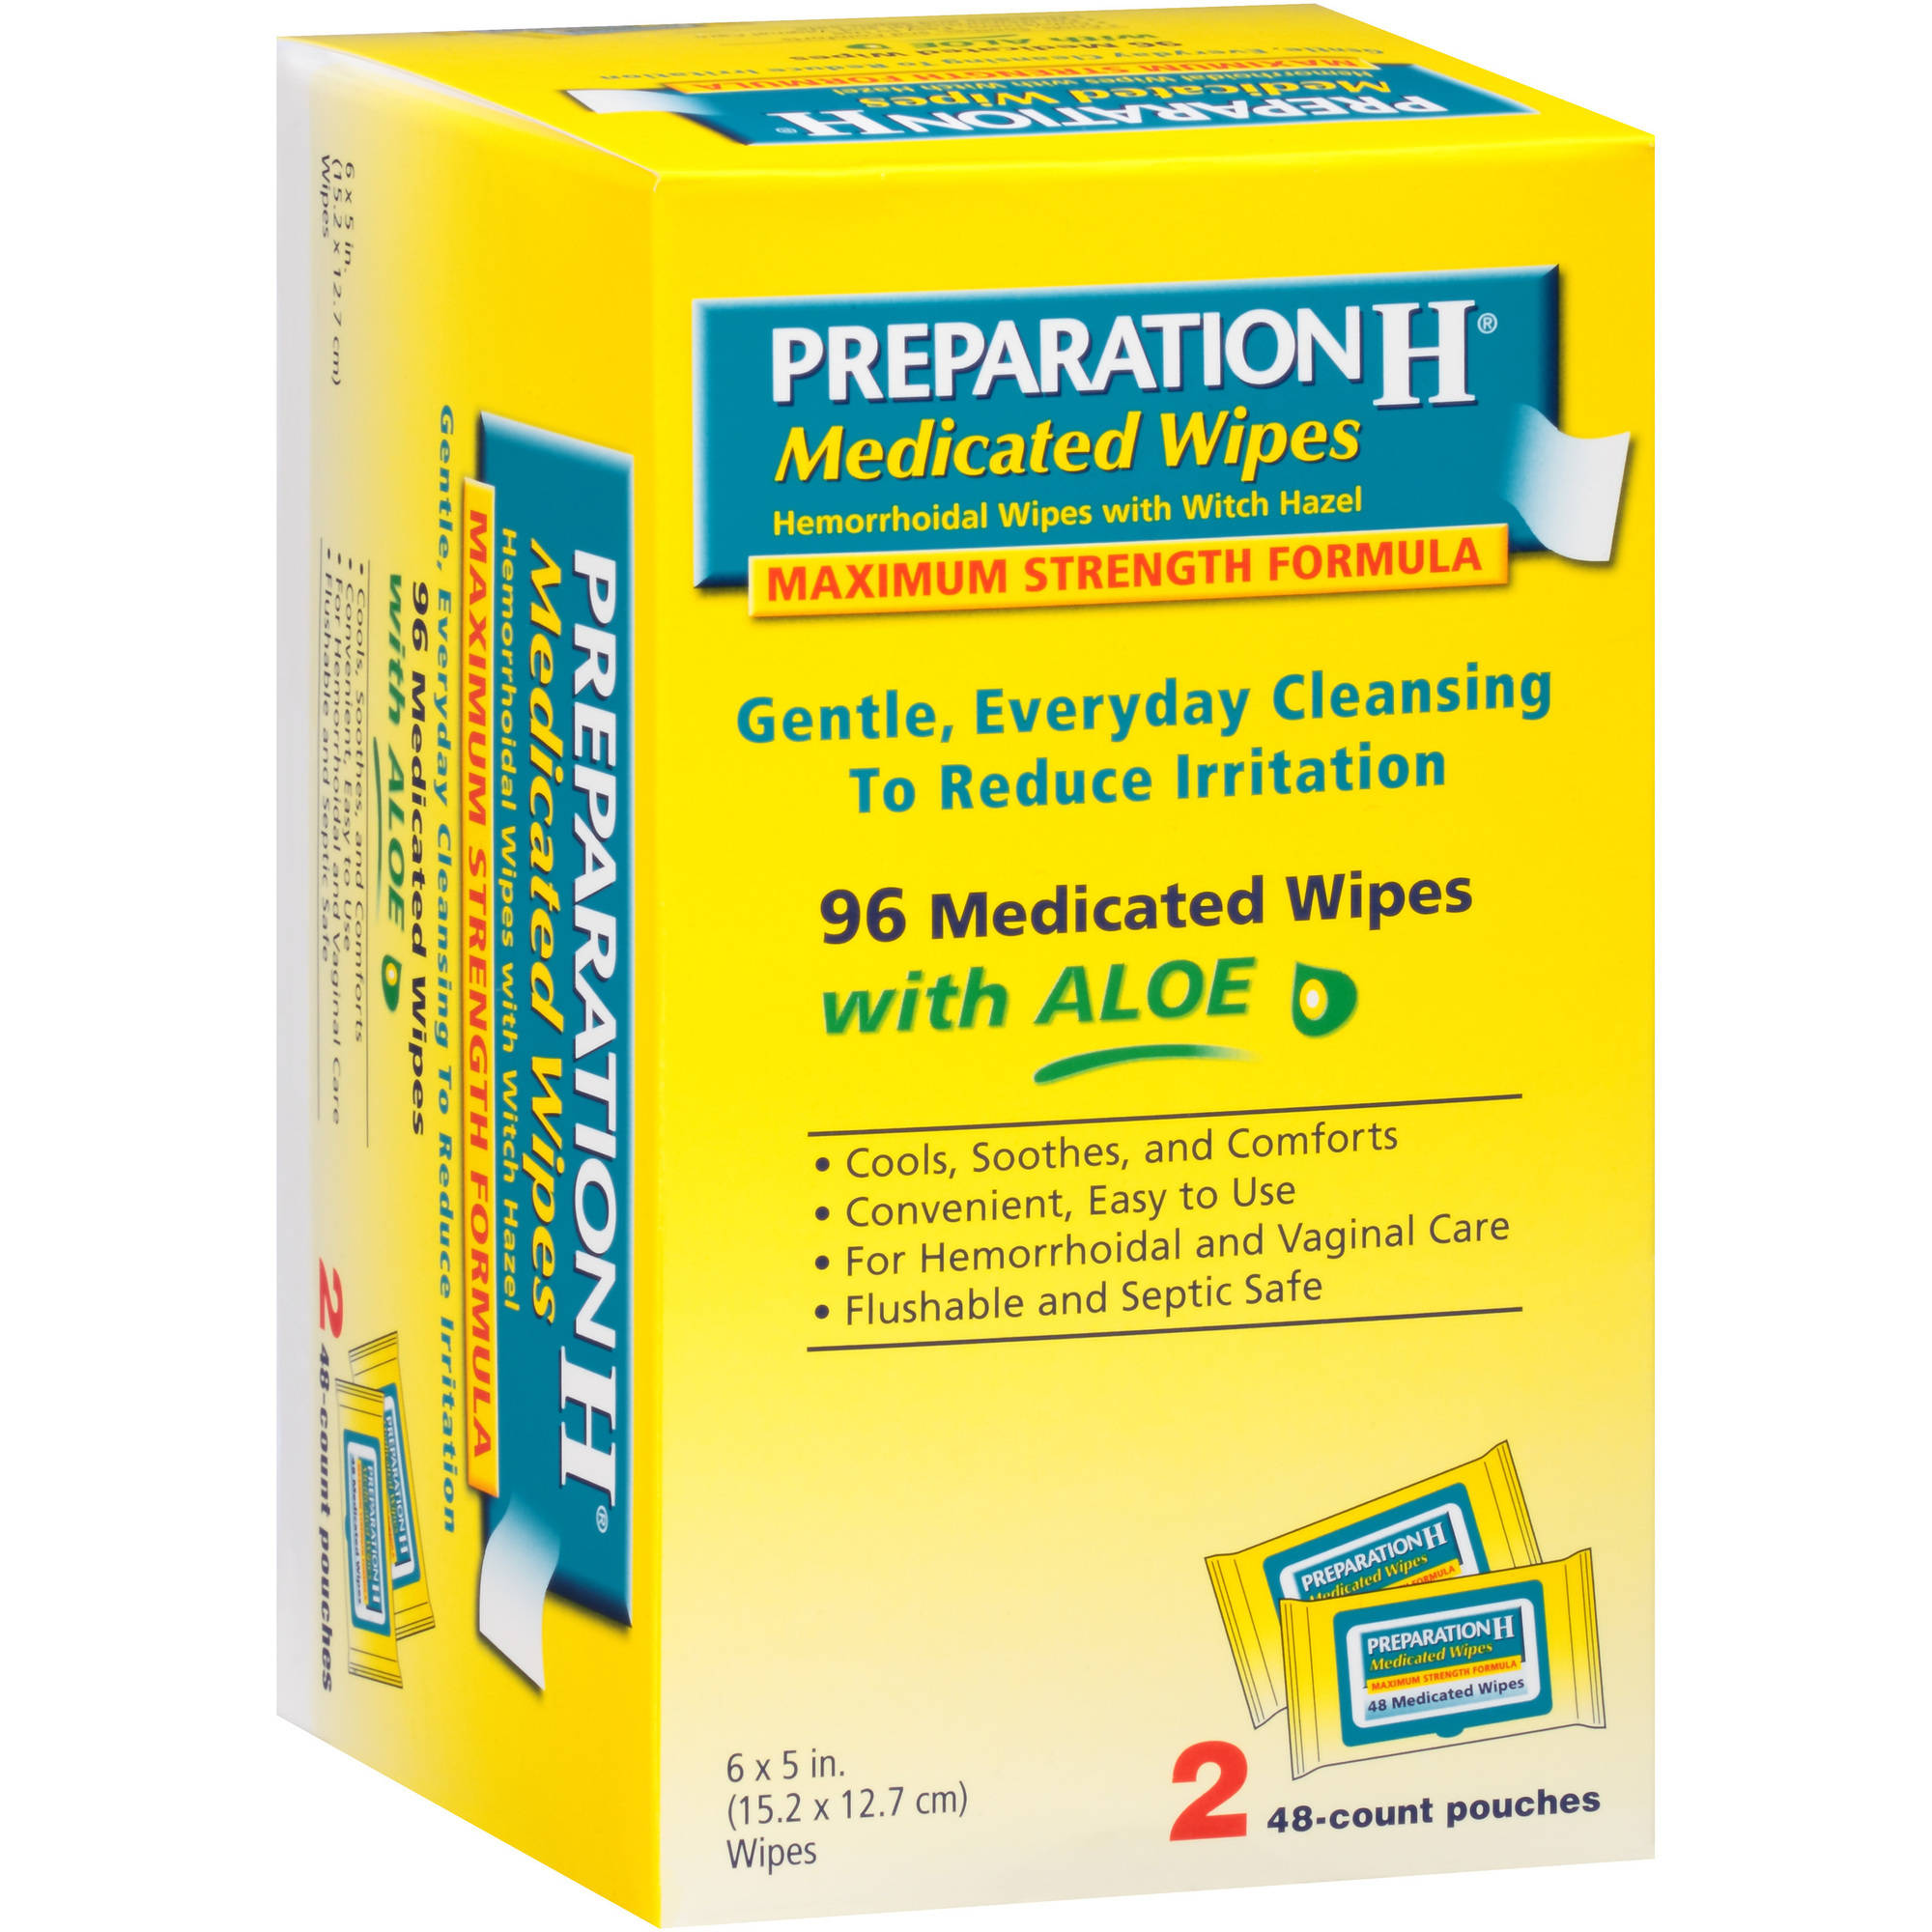 Preparation H Medicated Wipes Hemorrhoidal Wipes with Witch Hazel, 96 count